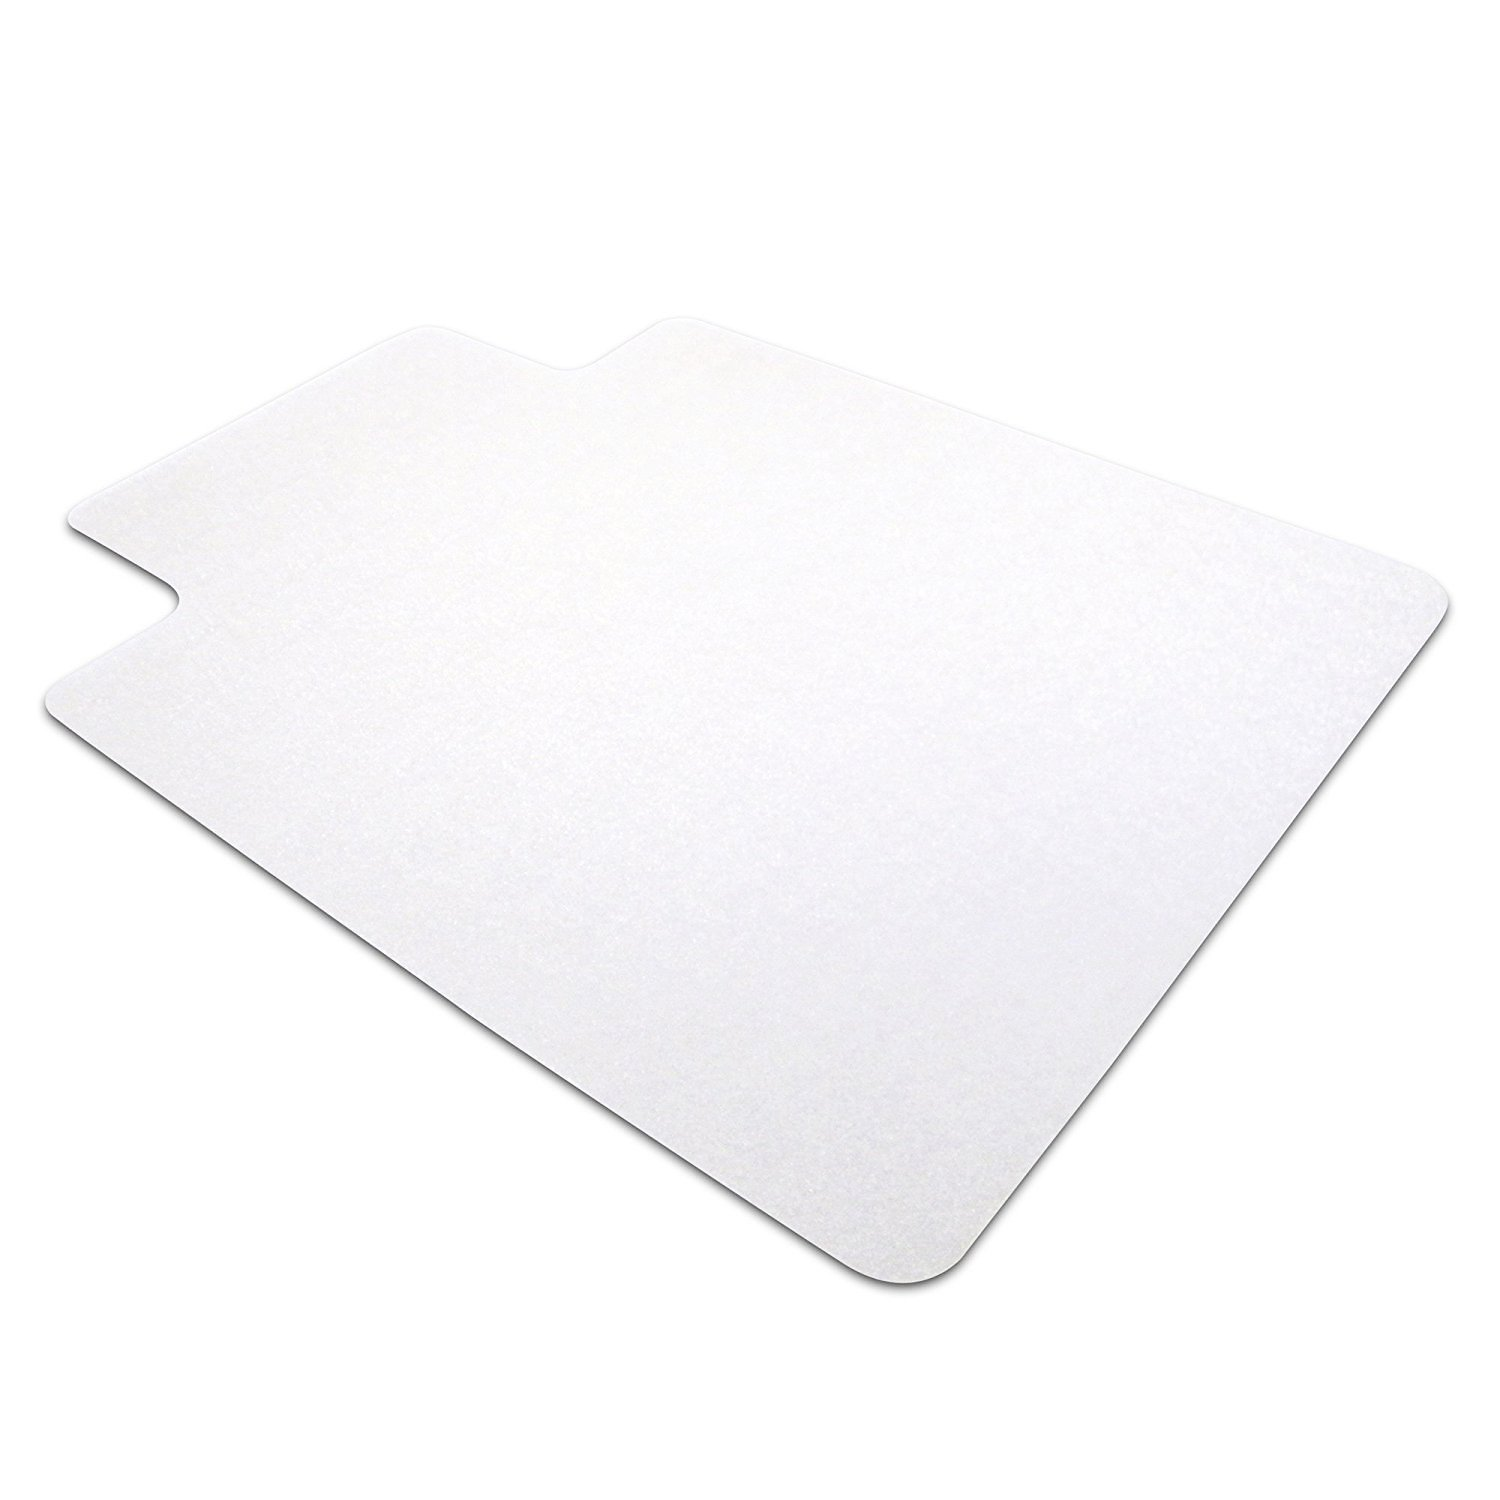 Home Office Non Slip PVC Desk Chair Mat Carpet Floor Protector